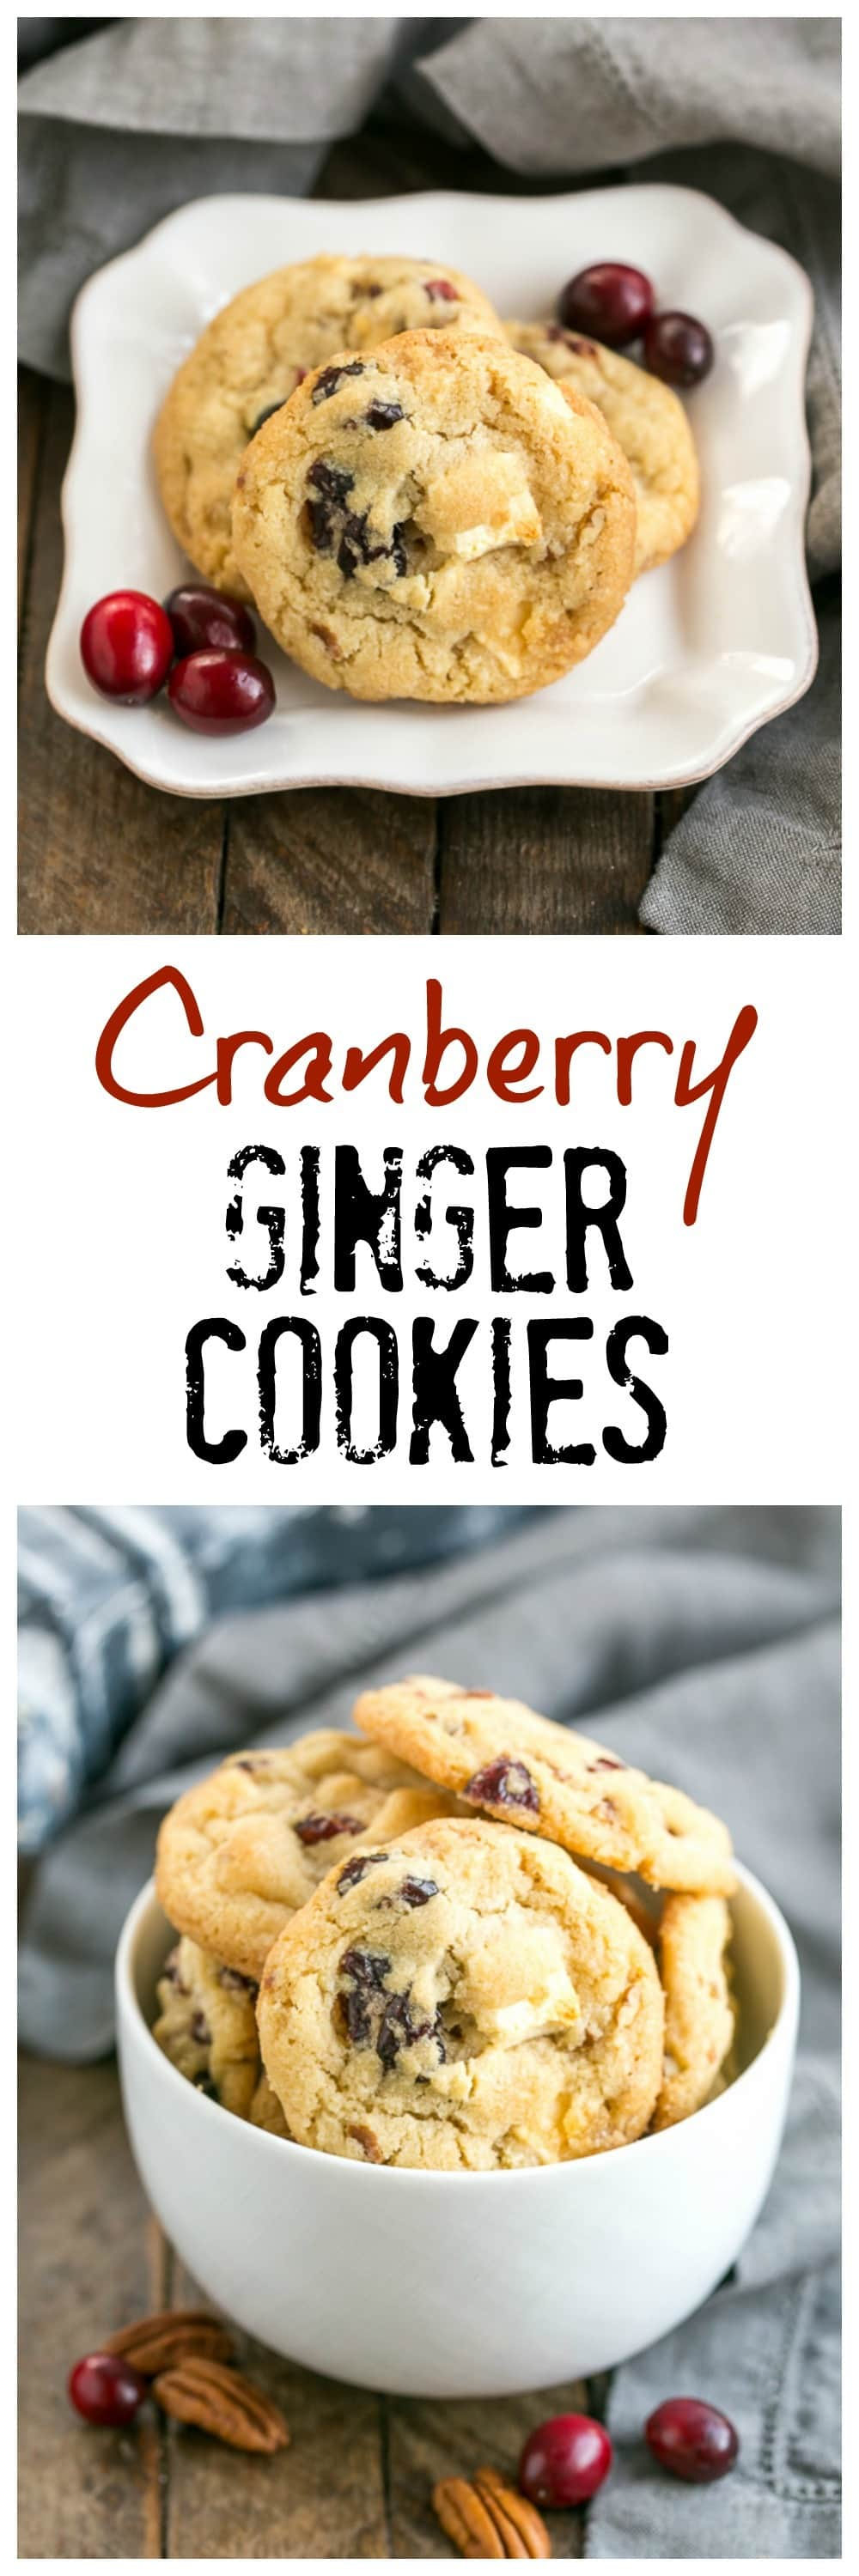 Cranberry, White Chocolate, Crystallized Ginger Cookies - A star studded cookie that's perfect for the holidays and all year long!